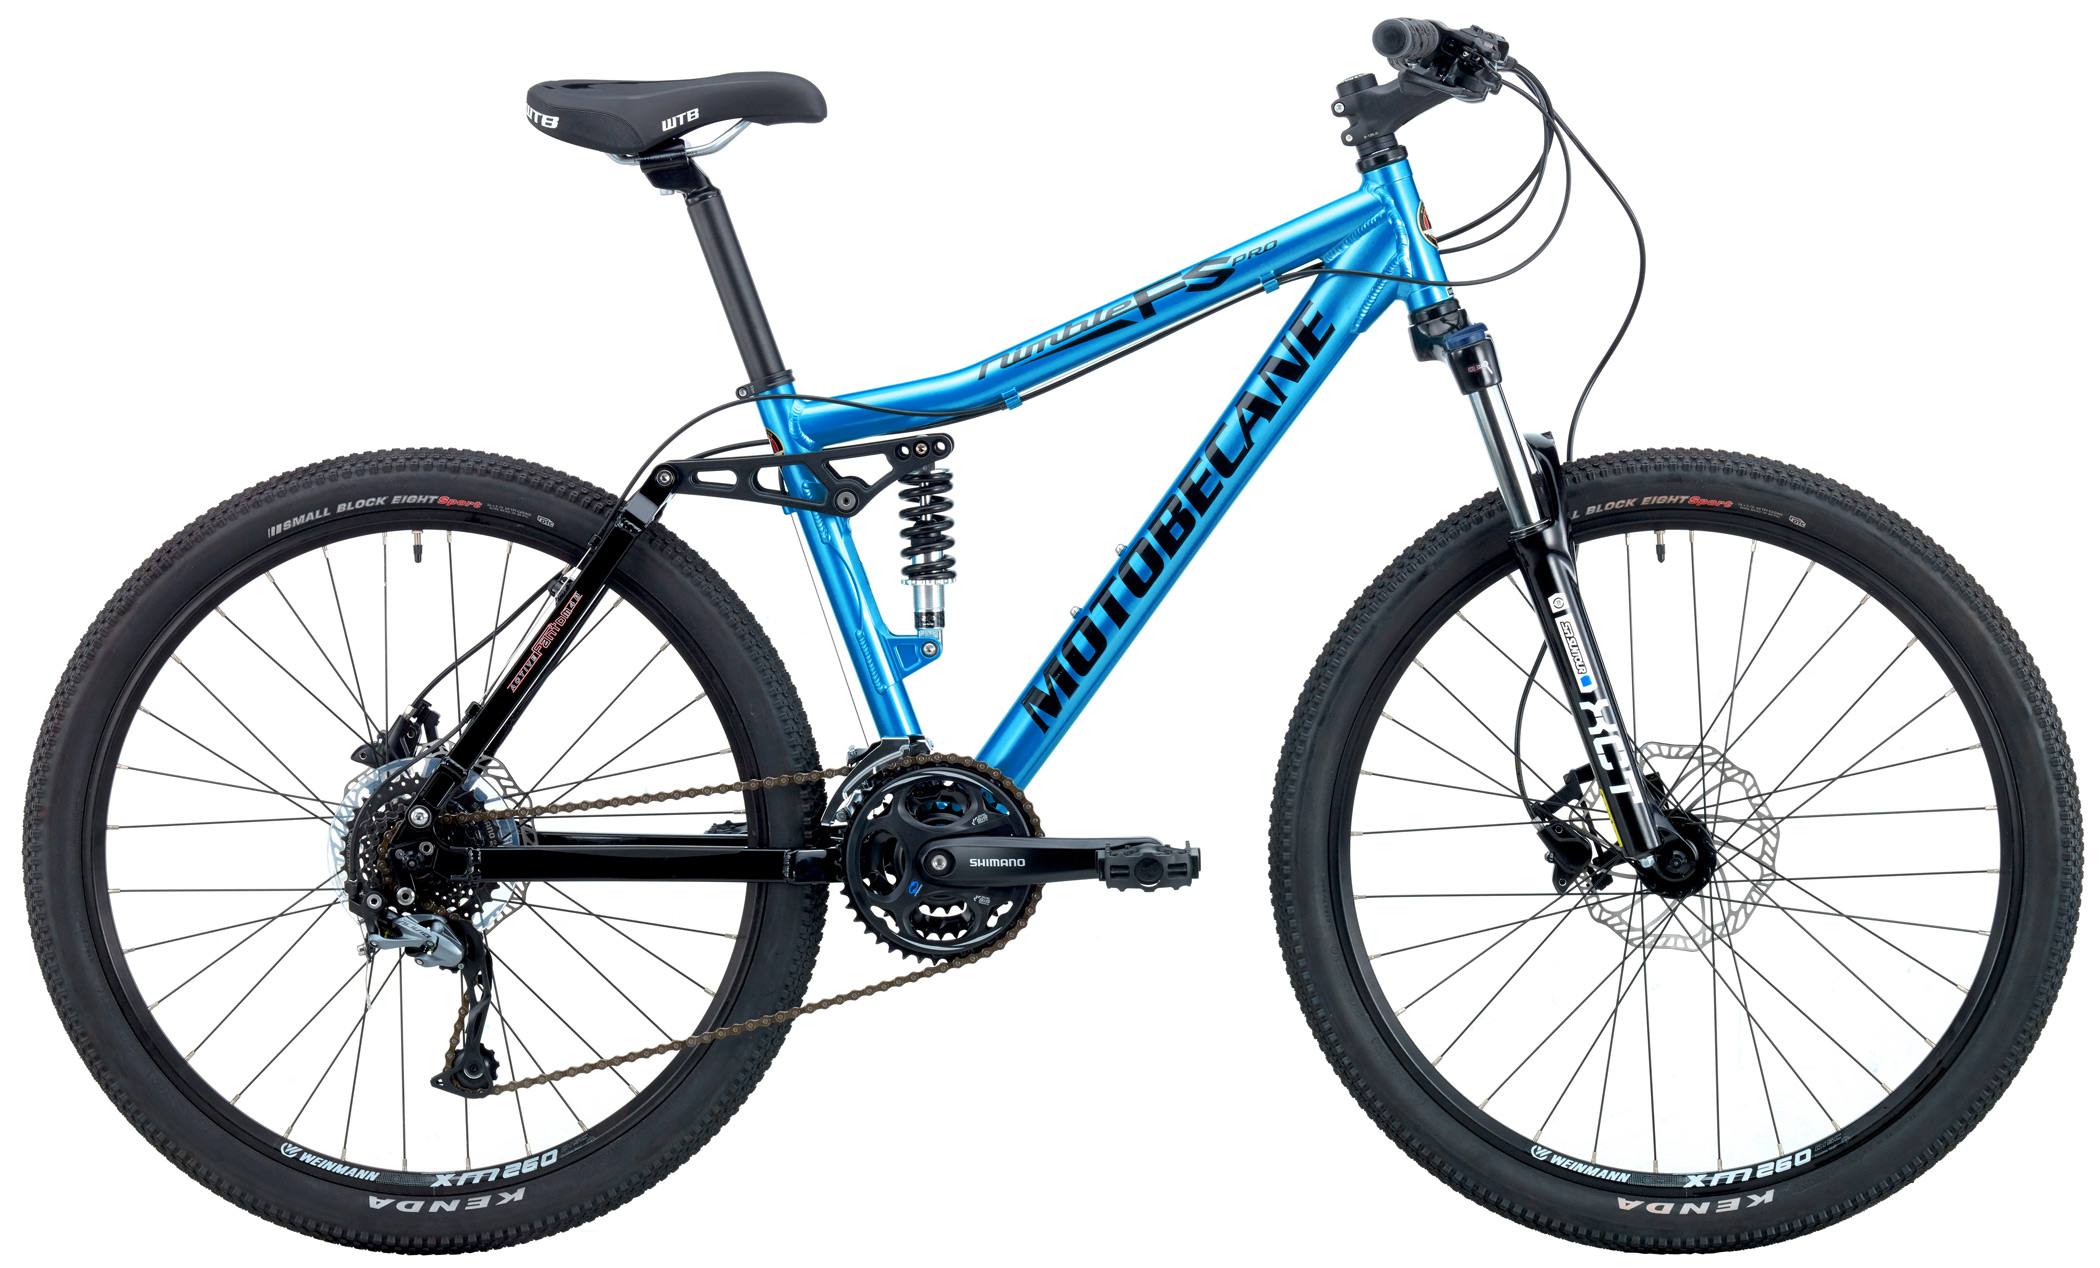 NIMBLE FS PRO - WOMANS DUAL SUSPENSION w/ DISC BRAKES & SHIMANO